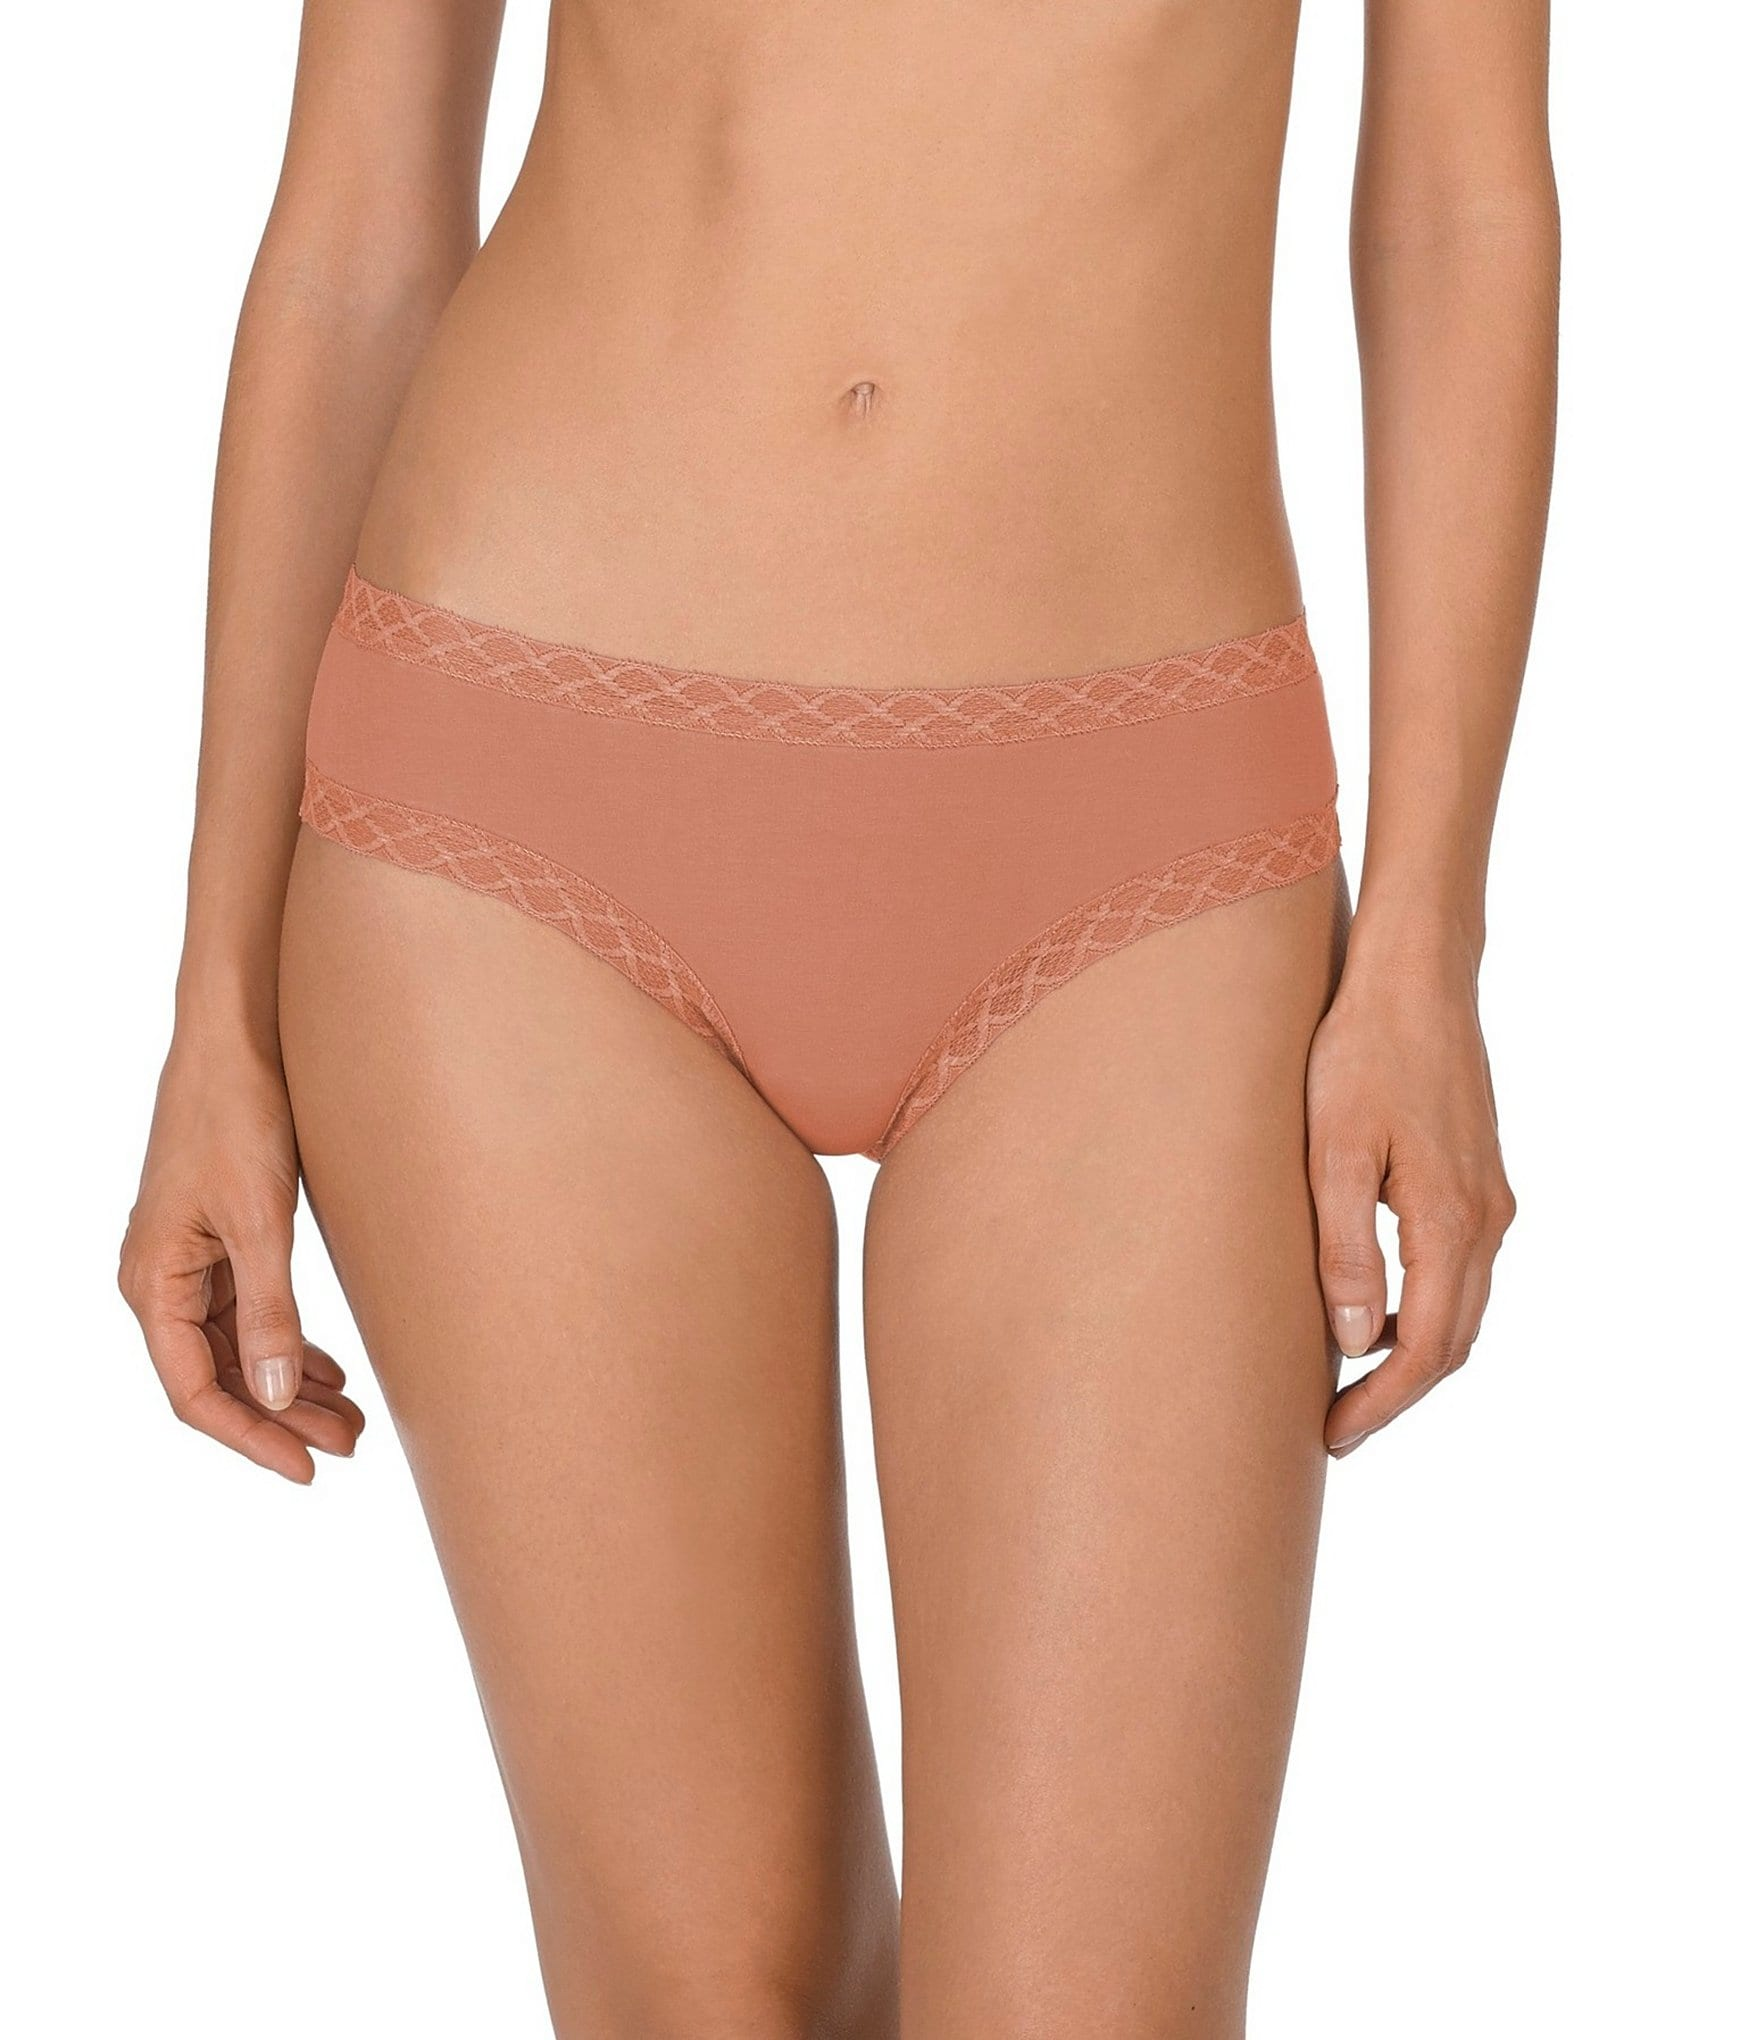 b5827c4fcb01 Natori Bliss Pima Cotton Girl Brief Panty | Dillard's